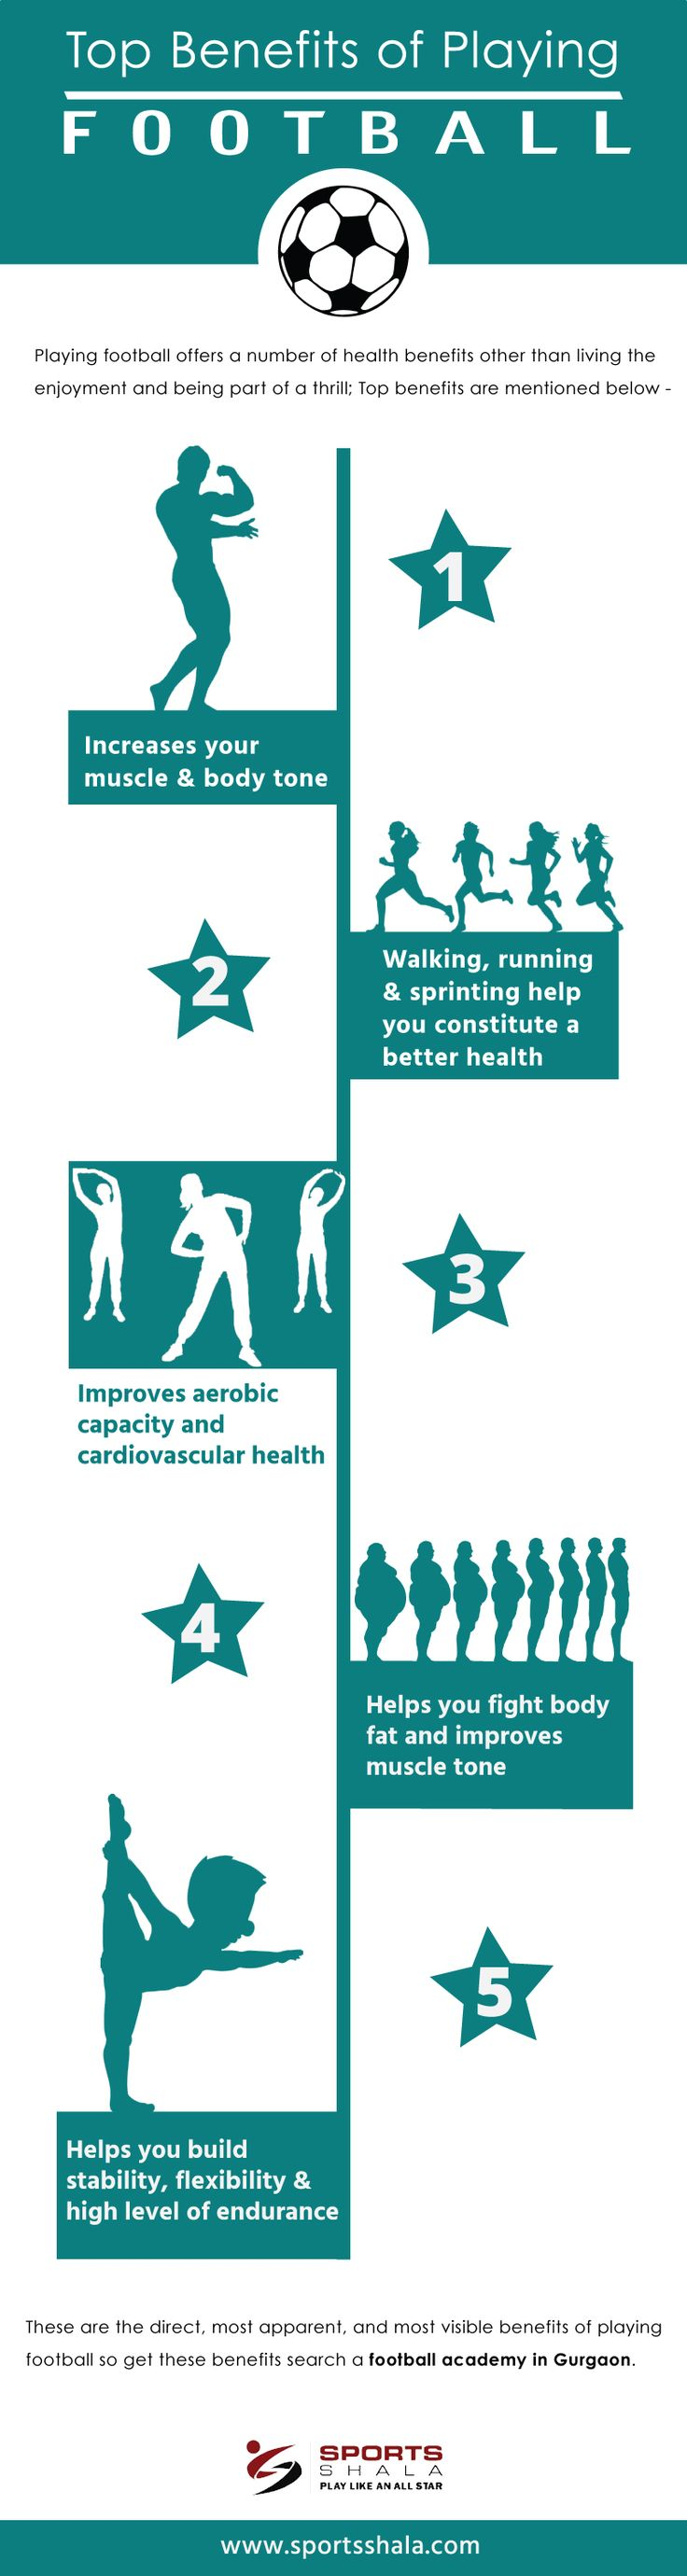 Top Benefits of Playing Football - Infographic Playing football offers a number of health benefits other than living the enjoyment and being part of a thrill; Top benefits are mentioned below -  •Increases your muscle and body tone  •Walking, running and sprinting help you constitute a better health  •Improves aerobic capacity and cardiovascular health  •Helps you fight body fat and improves muscle tone  •Helps you build stability, flexibility and high level of endurance These are the…